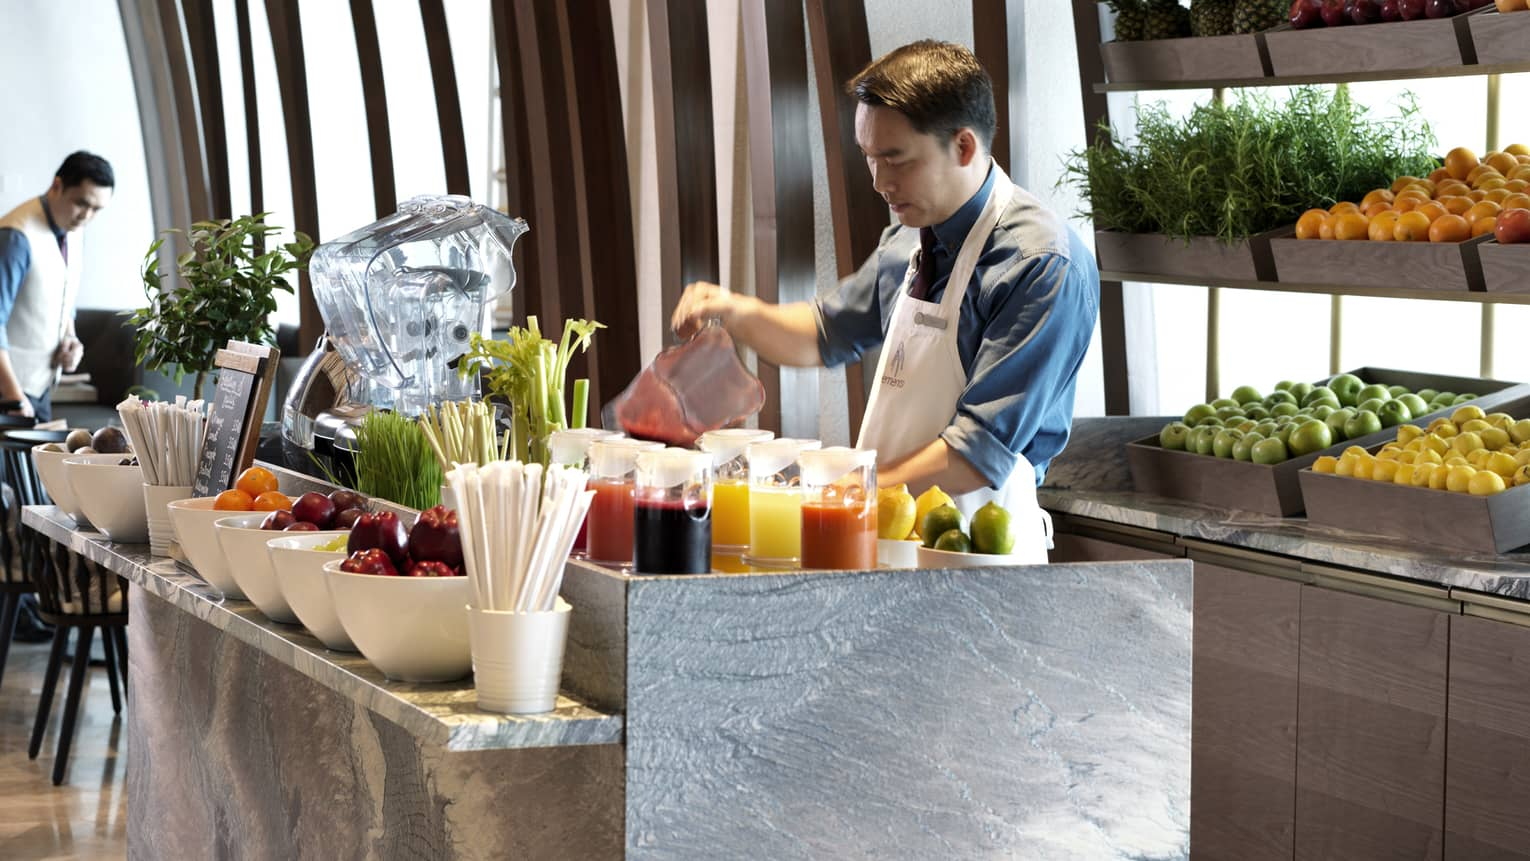 Hotel staff wearing apron pours smoothie from blender in front of counter with fresh fruit, juice